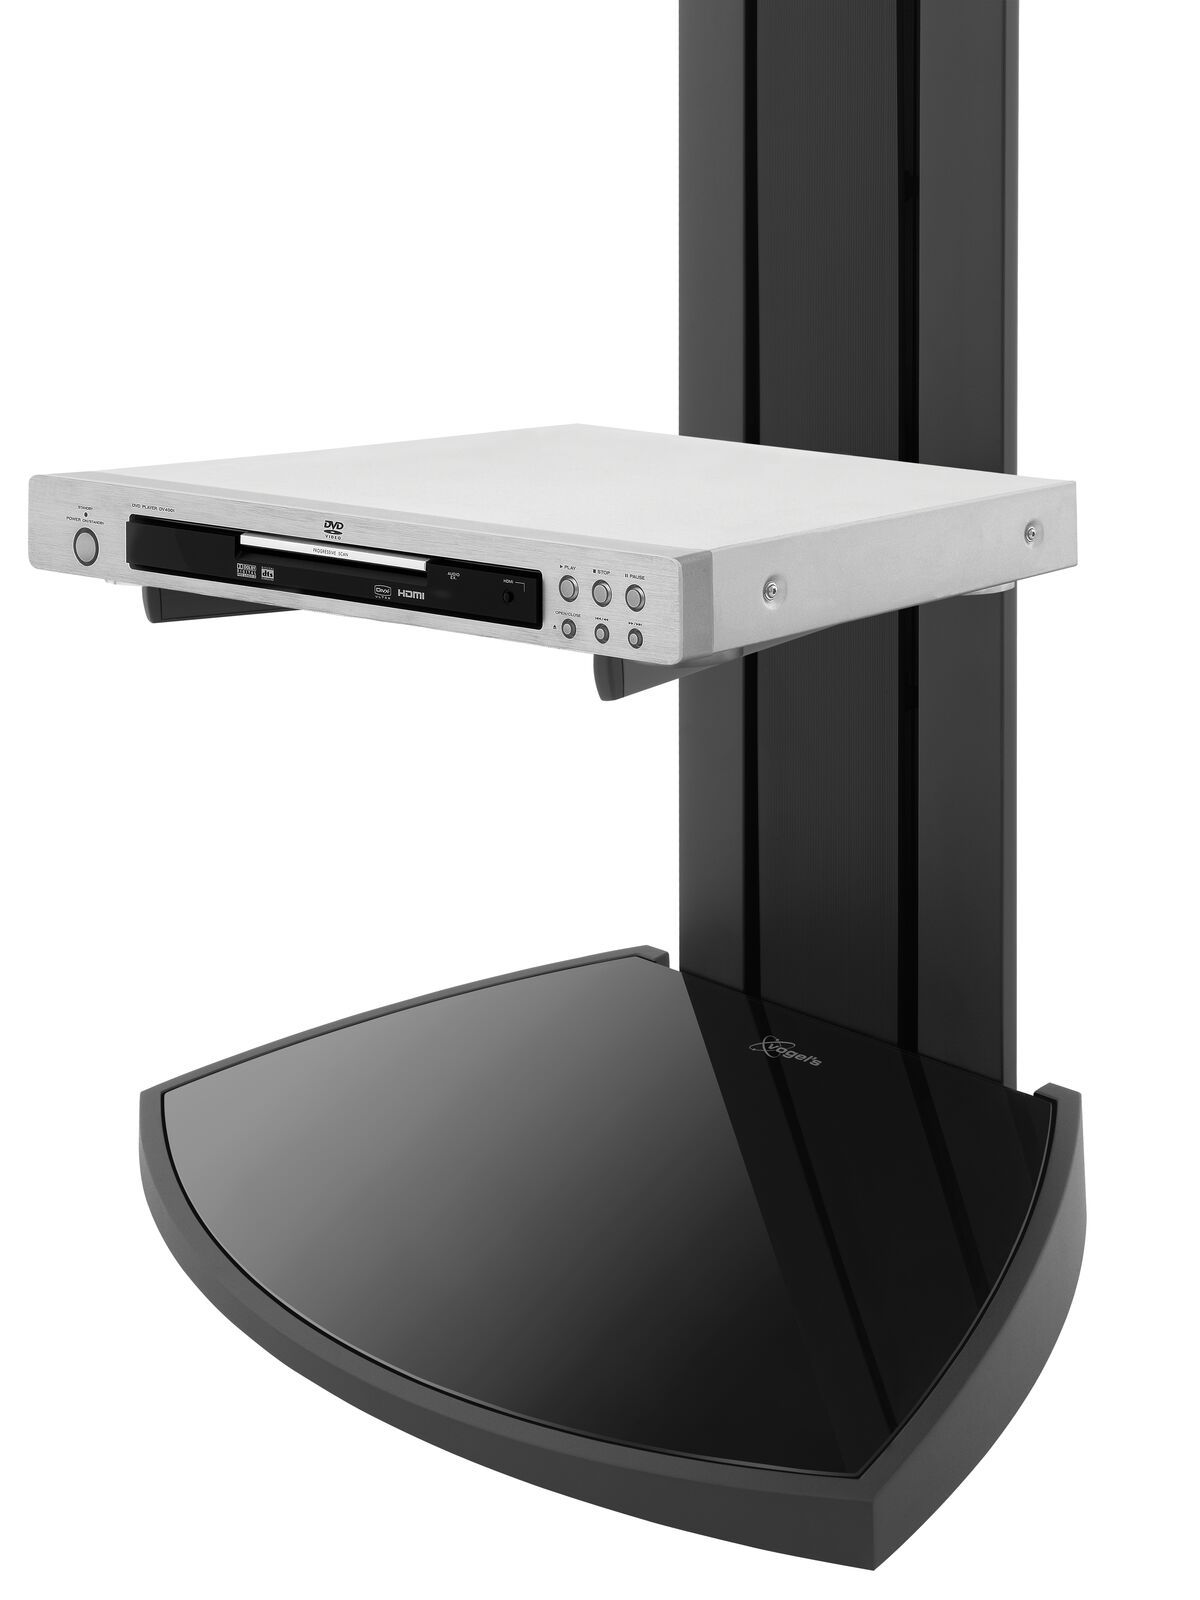 Vogel's EFF 8340 TV Floor Stand (black) - Suitable for 40 up to 65 inch TVs up to 45 kg - Detail